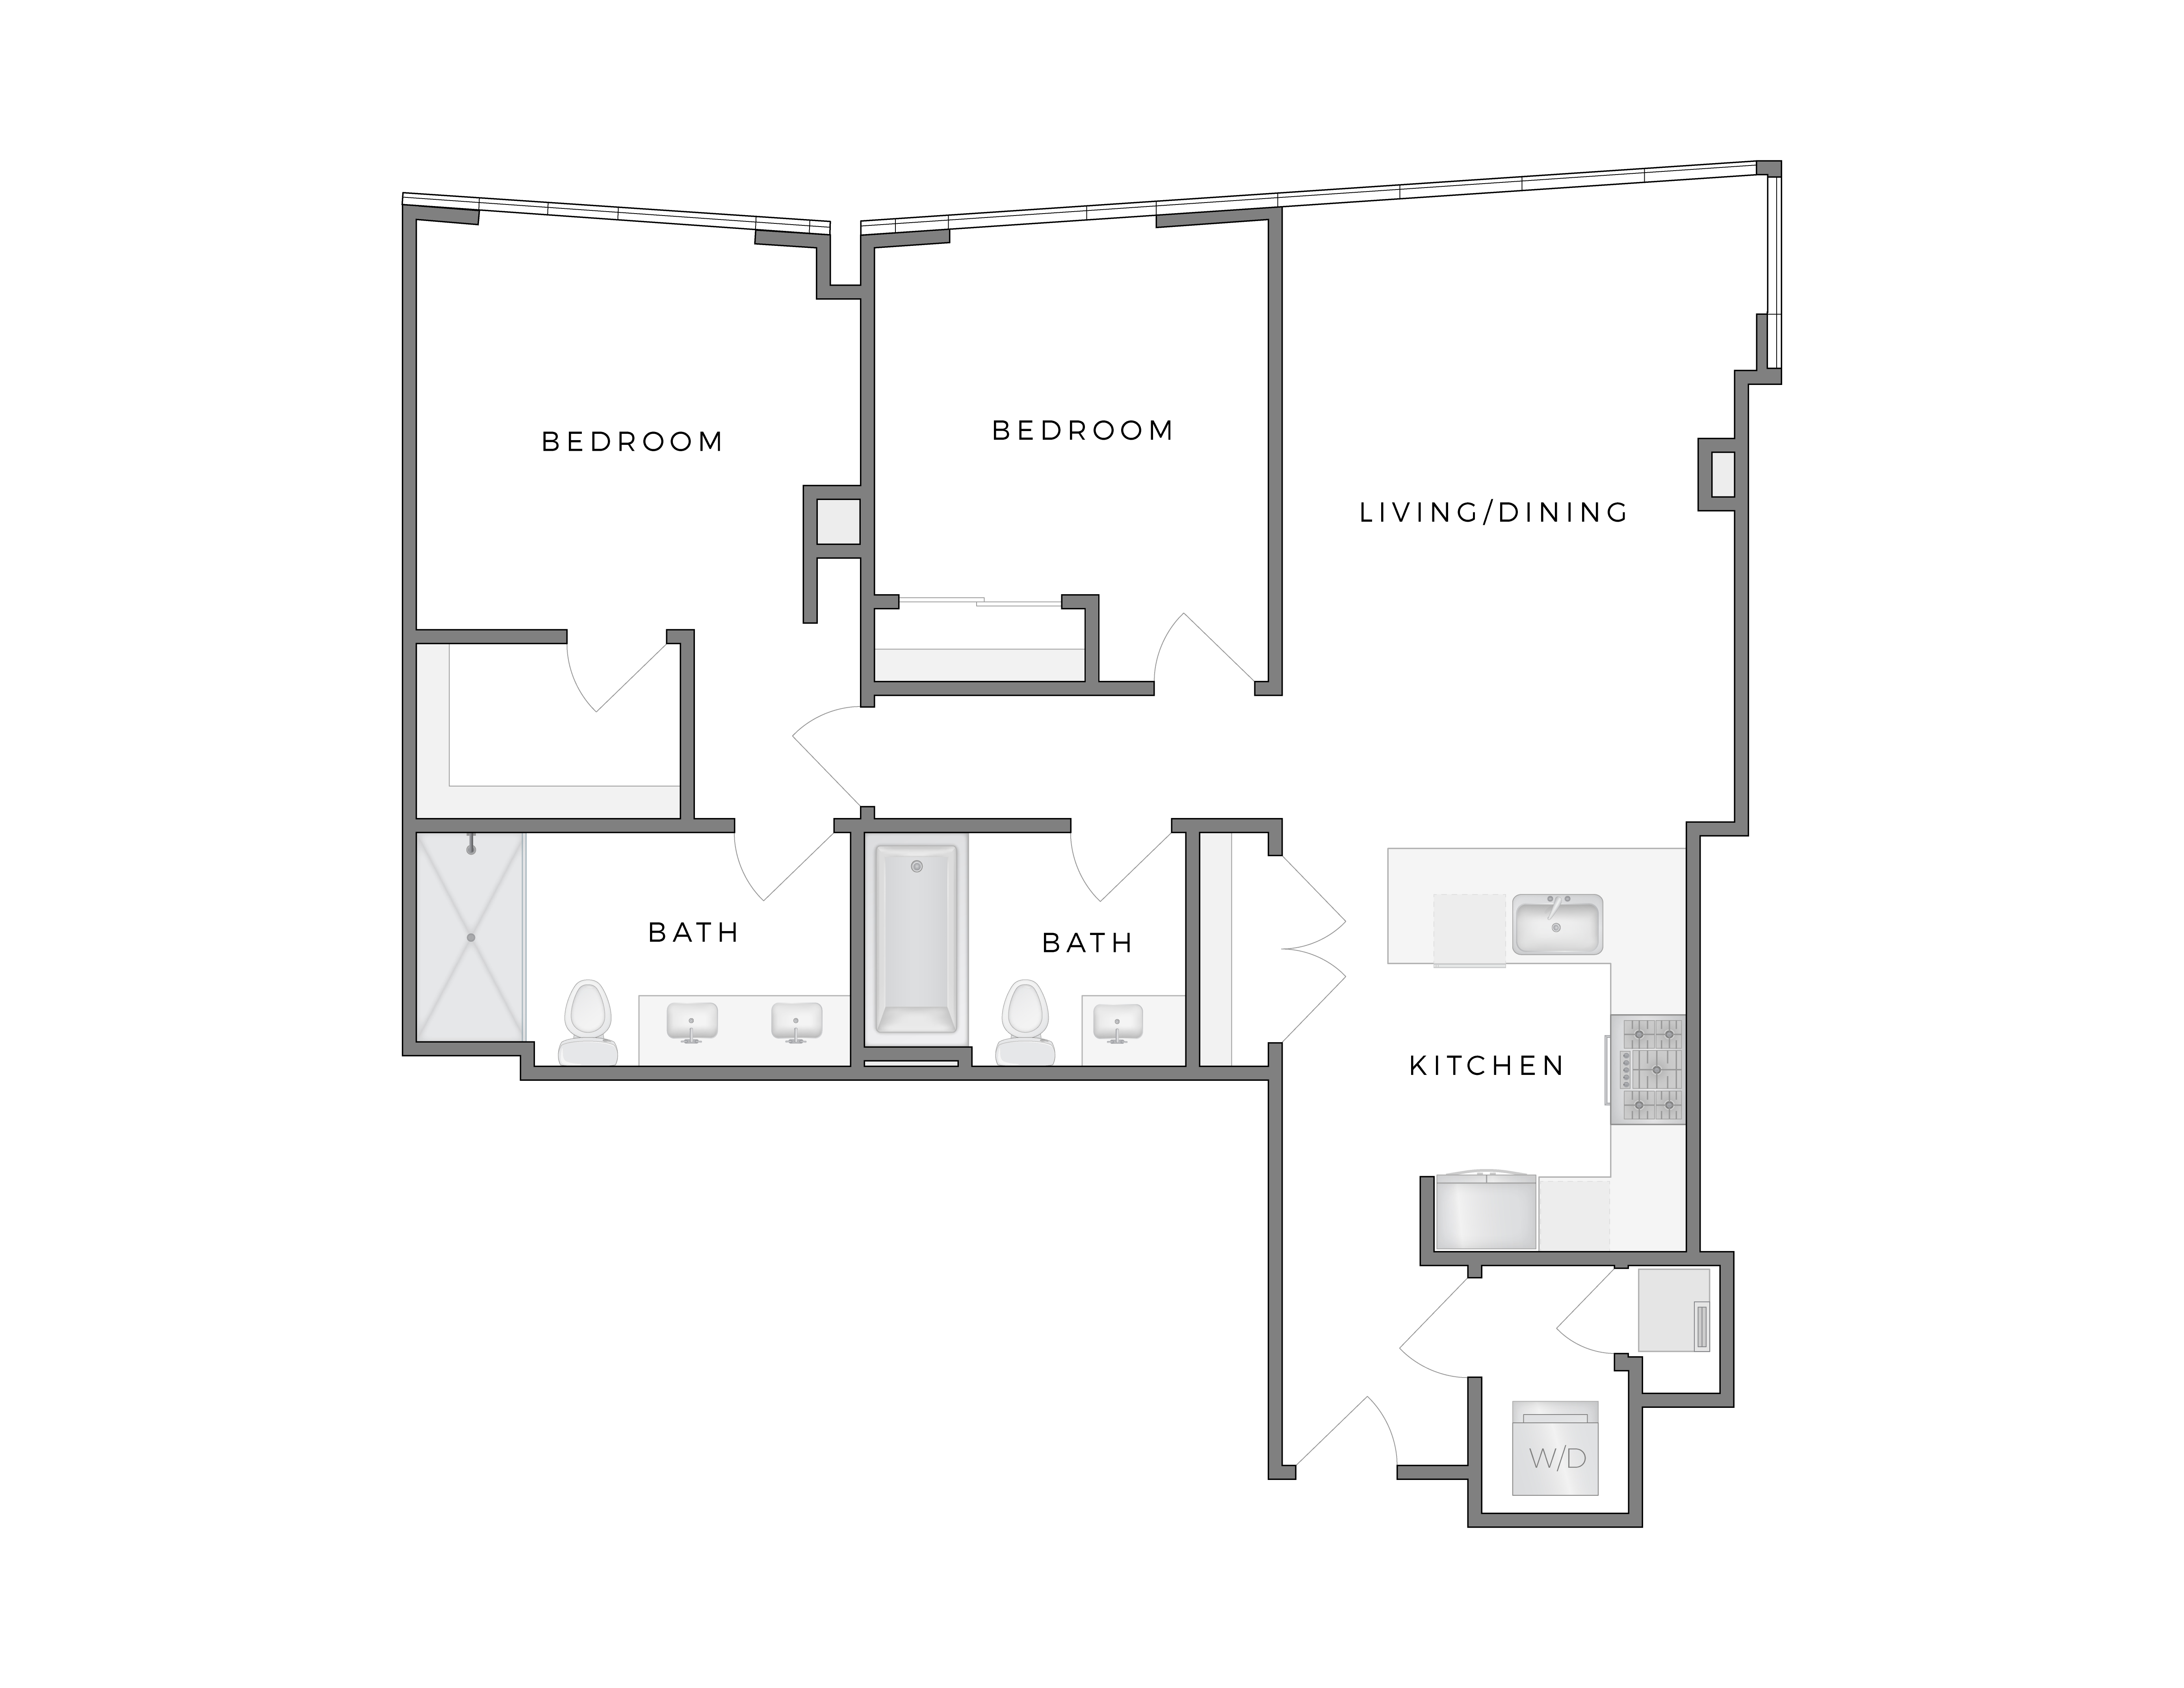 Atelier Penthouse apartment Warhol 1 floorplan diagram with two bedrooms, two bathrooms, kitchen, and living dining area